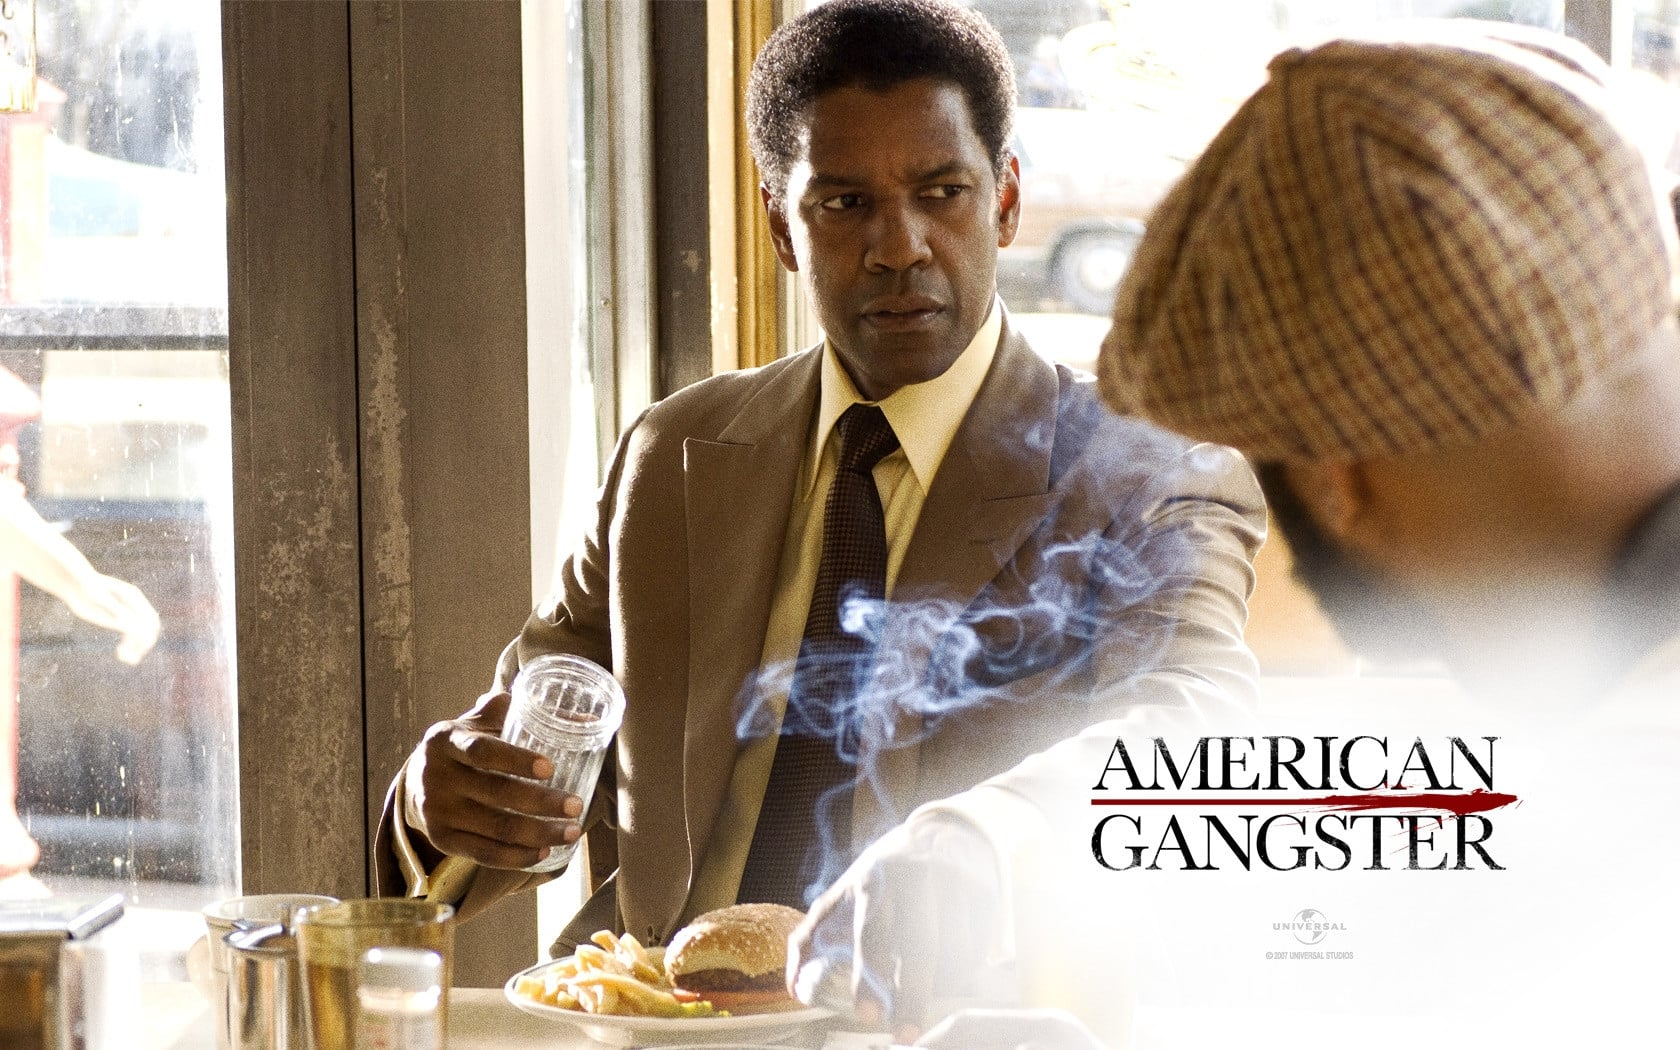 american gangster essay American gangster struggles to find fresh ways to tell its story within the confines of the traditional crime drama impossible, maybe, but entertaining nonetheless.